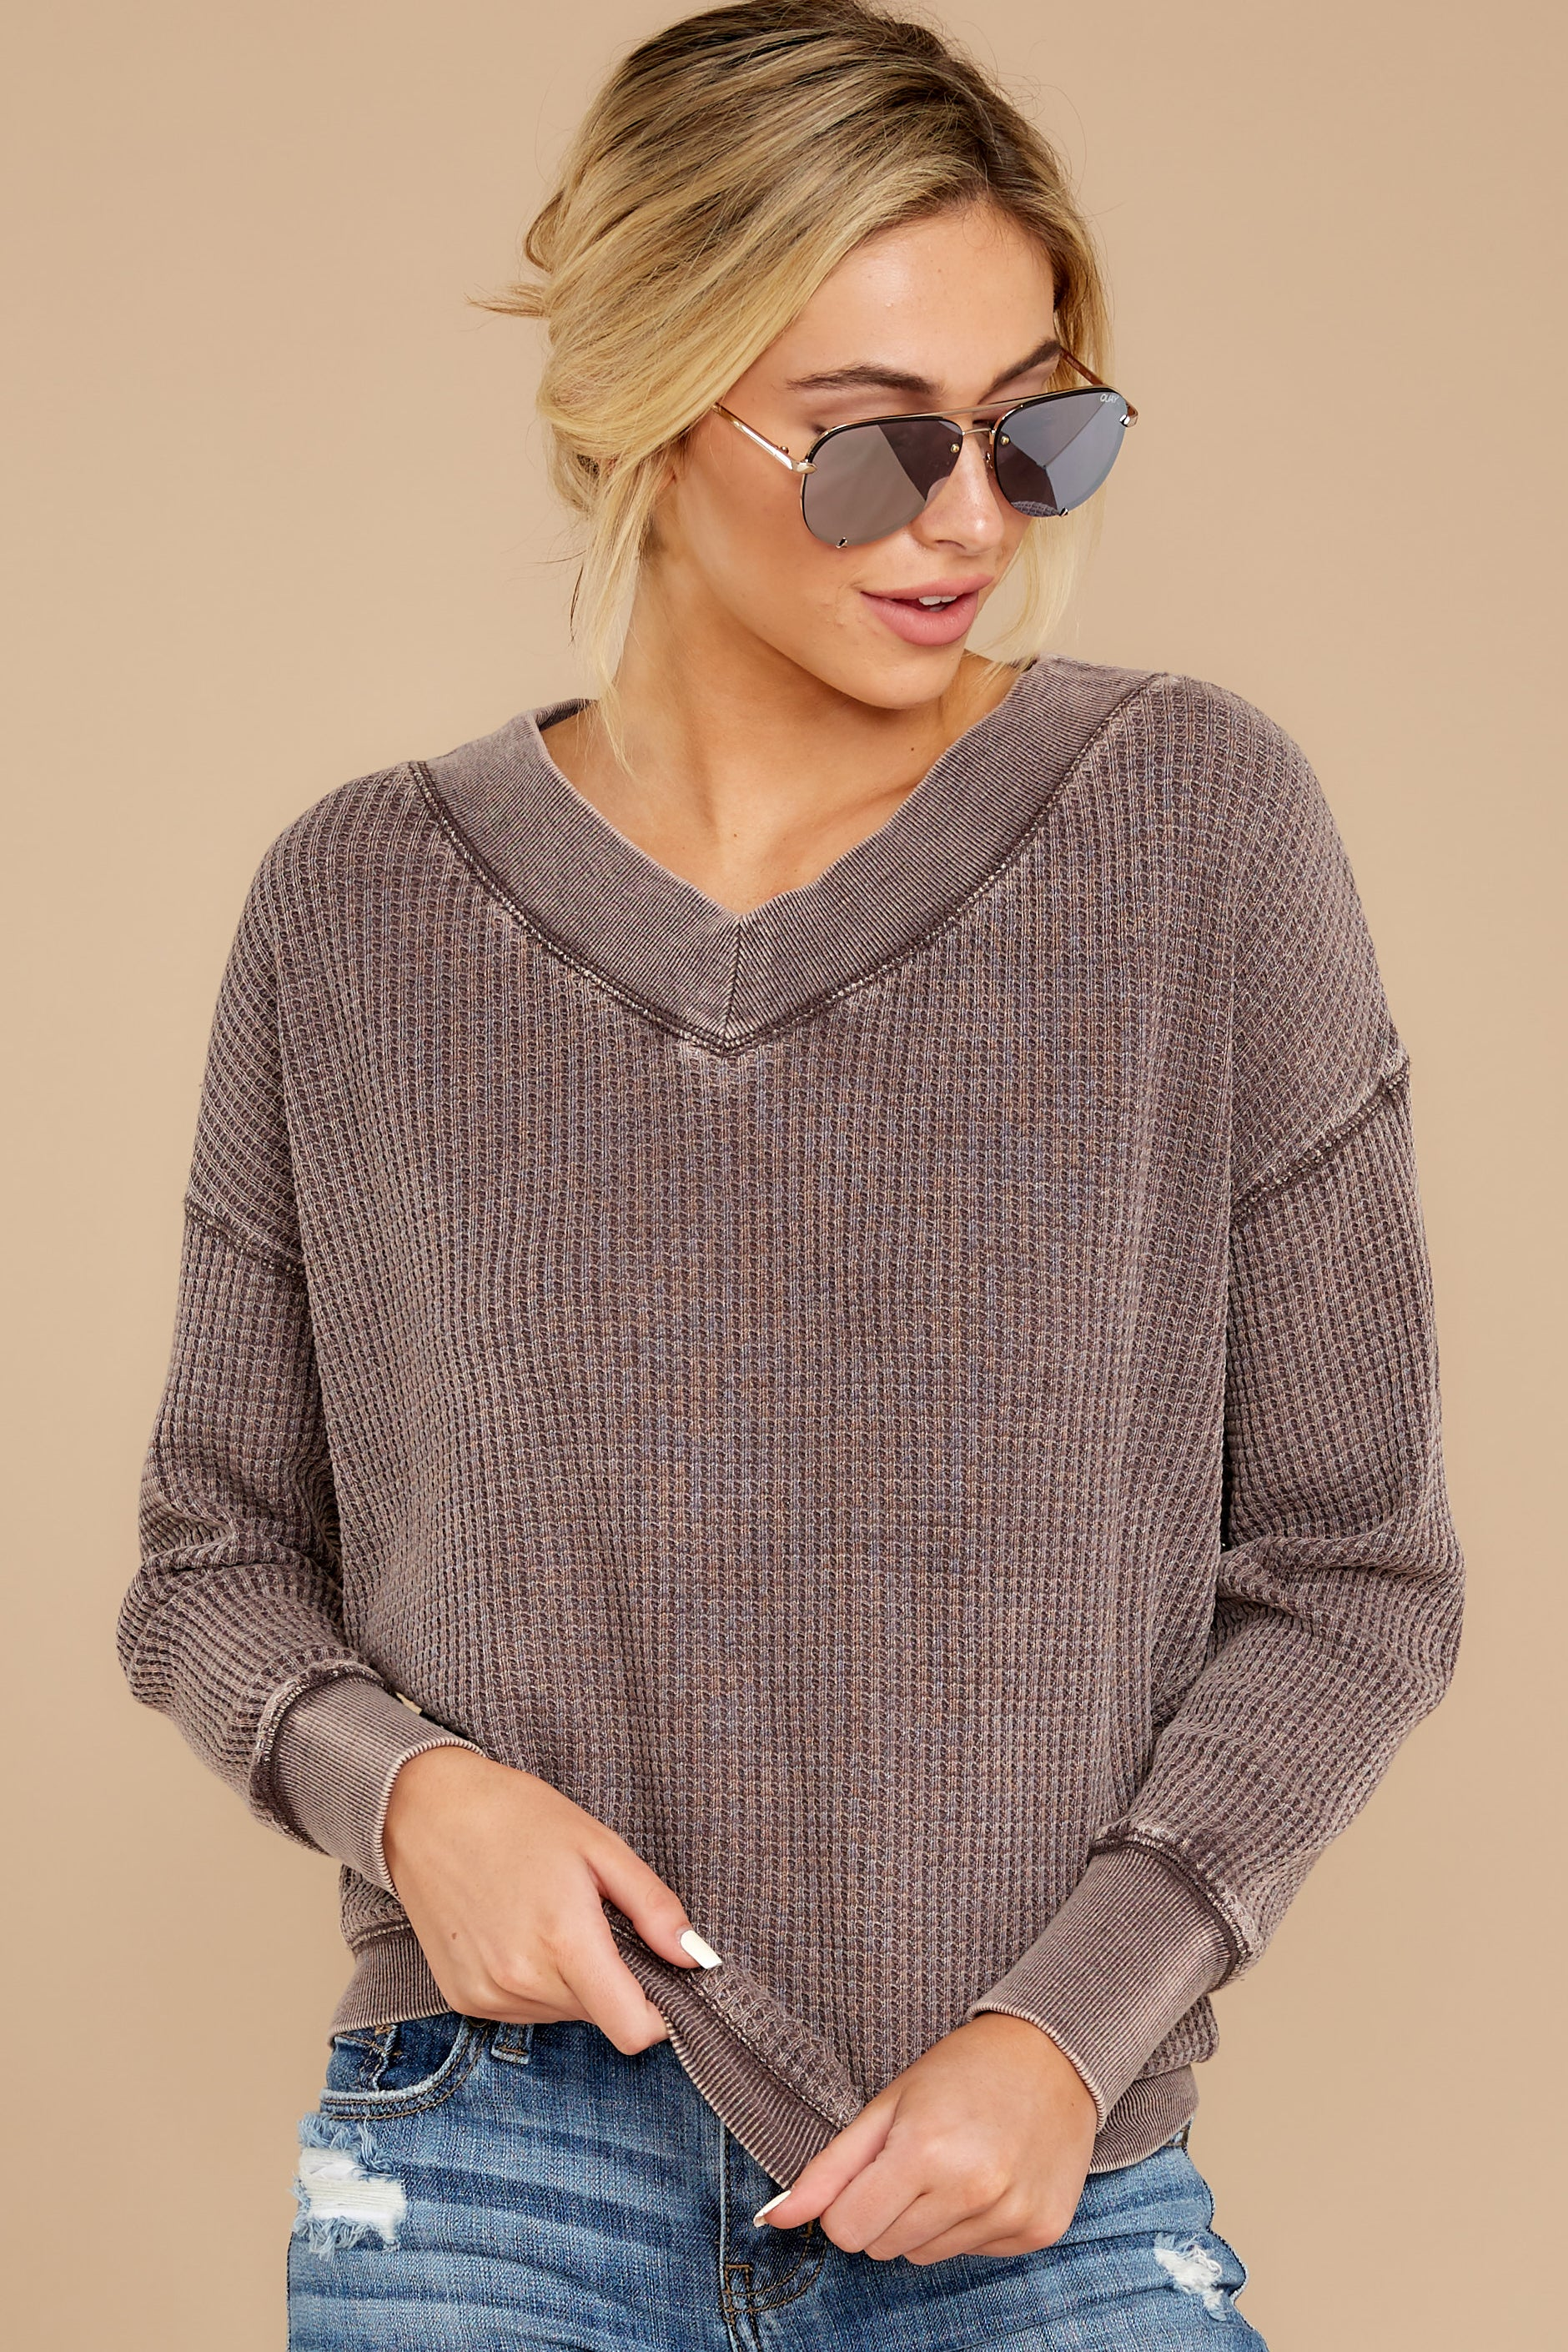 The Reddened Brown Emilia Waffle Thermal Top